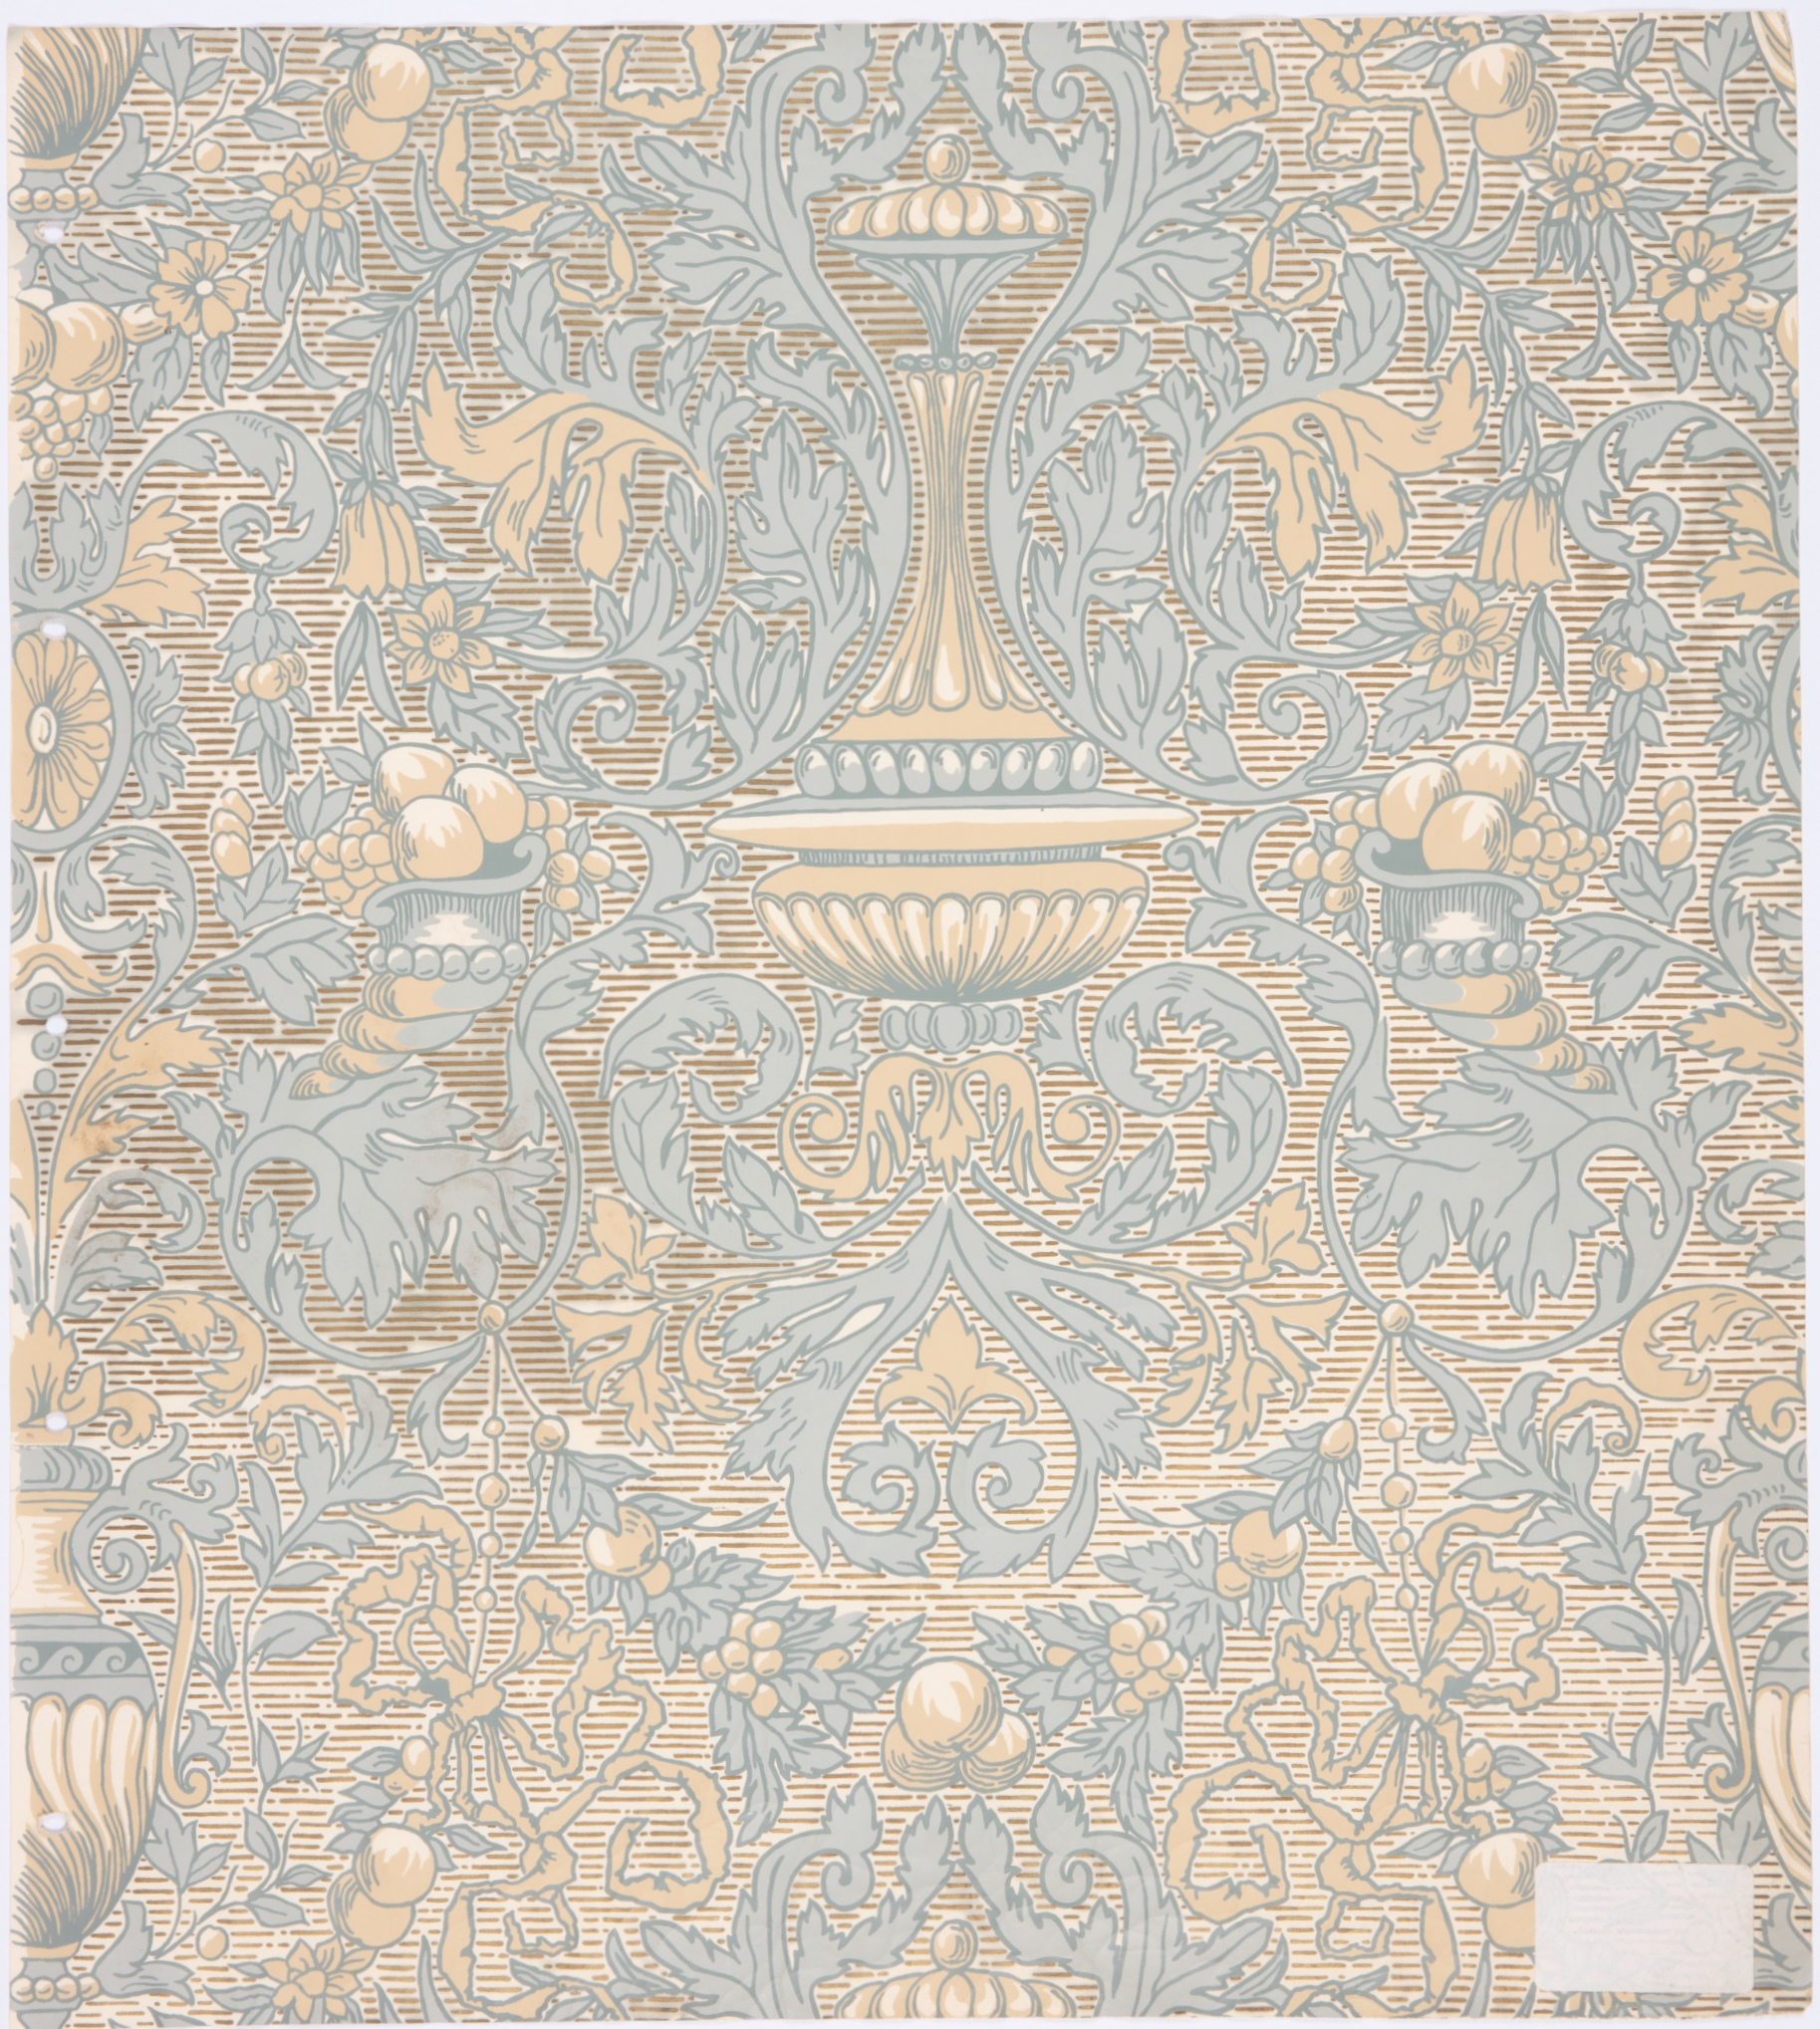 Wallpaper recreated for the Legislative Council Chamber, Parliament House, Sydney